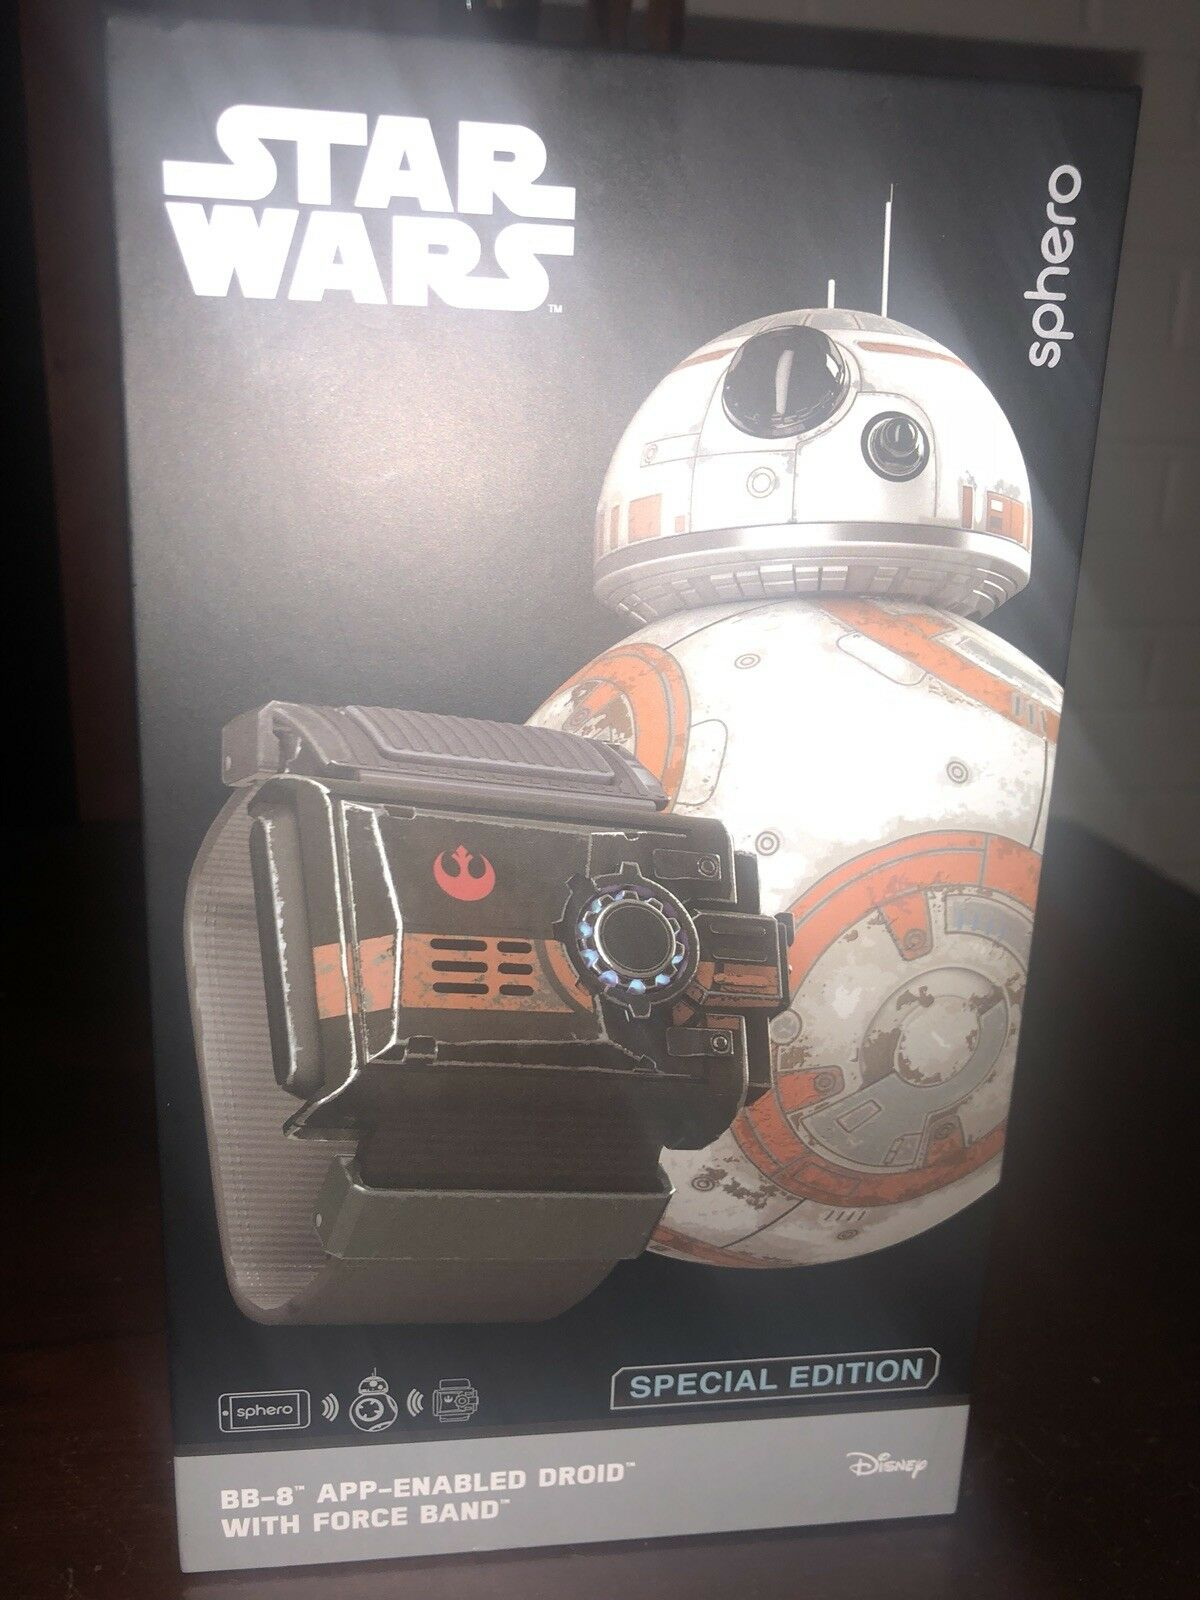 Sphero STAR WARS BB8 BB8 BB8 with Force Band and Special Edition Collector Tin b28e5b